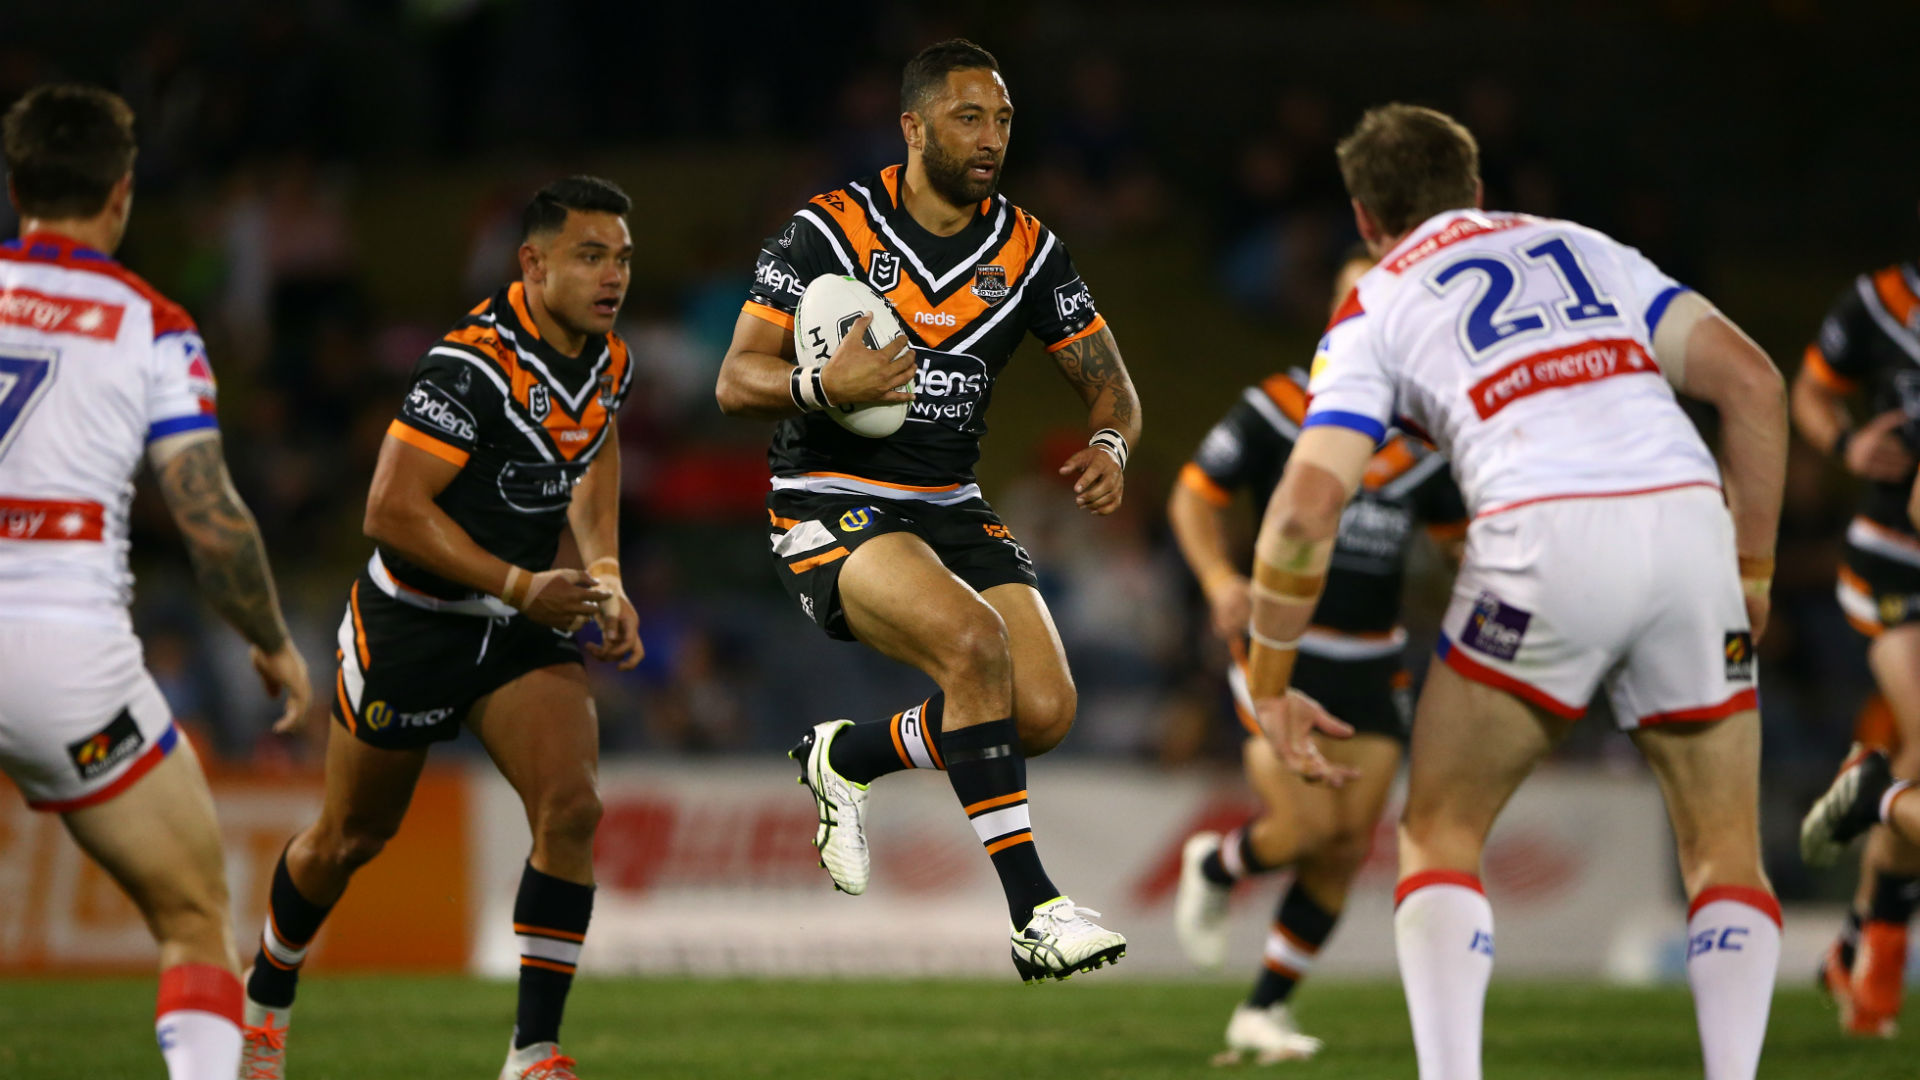 Wests Tigers playmaker Benji Marshall plans to wait until the end of the NRL season to make an announcement over his future.